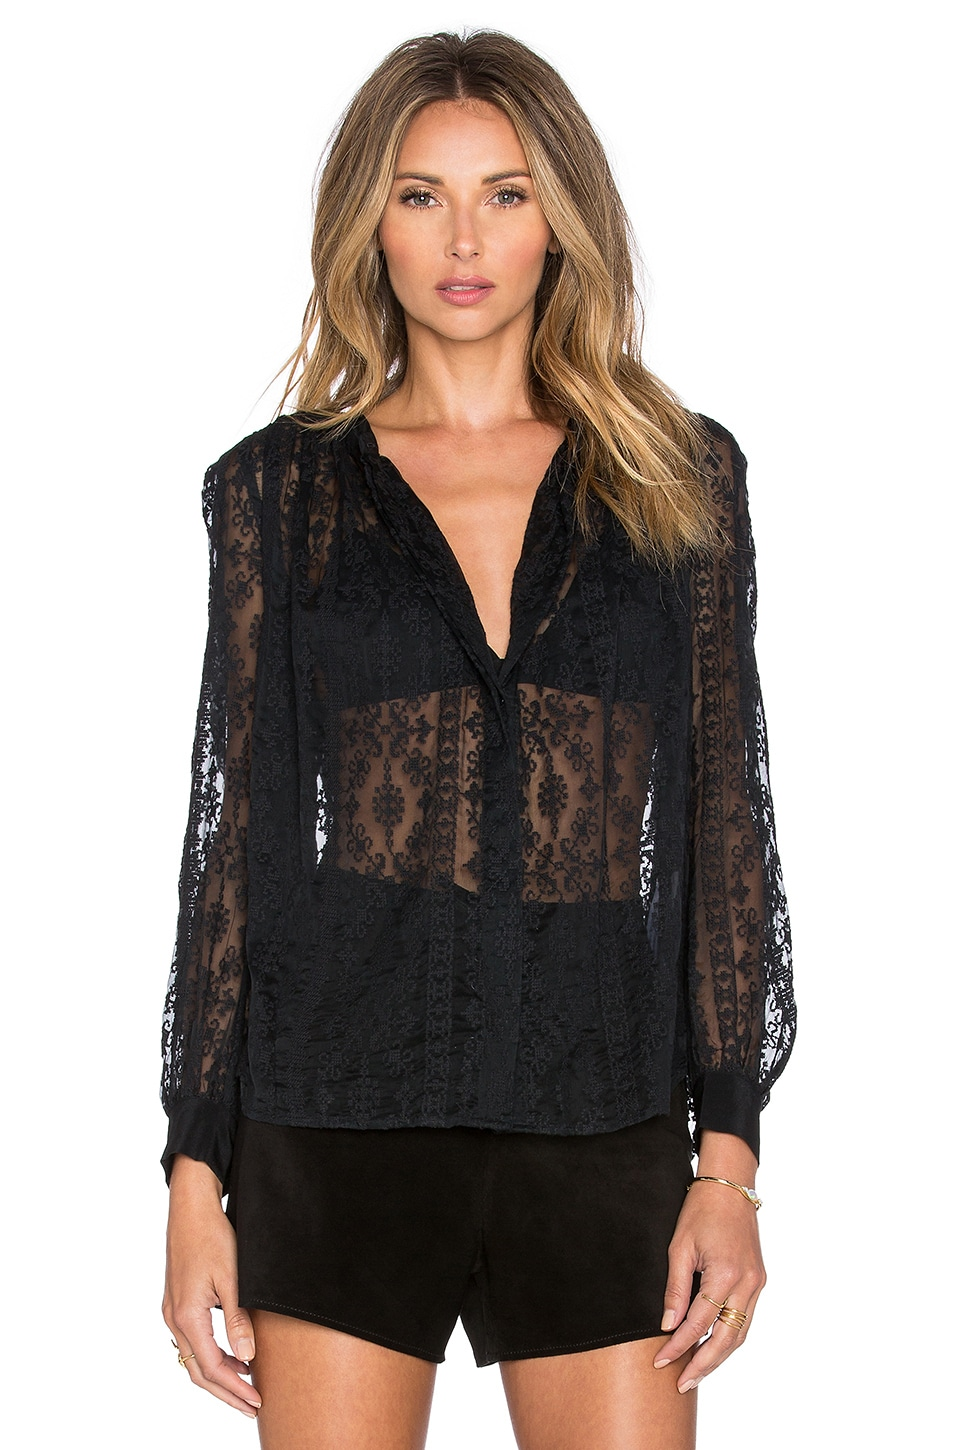 Hoss Intropia Floral Button Up Blouse in Black